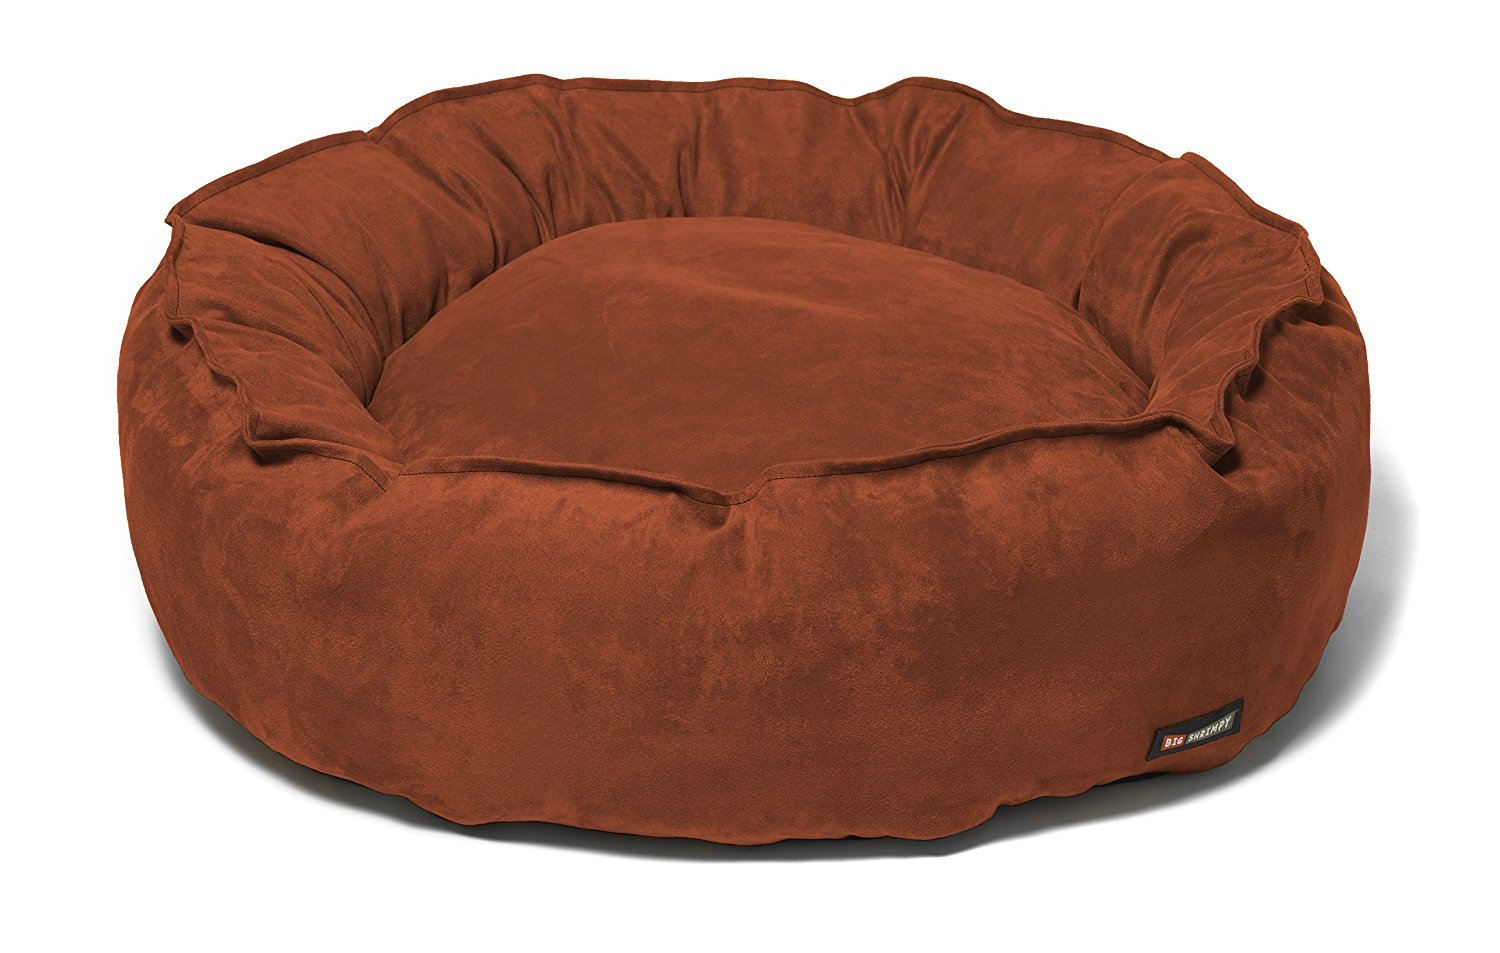 Paprika Suede Small Paprika Suede Small Big Shrimpy 3710 Nest Faux Bed, Small, Paprika Suede